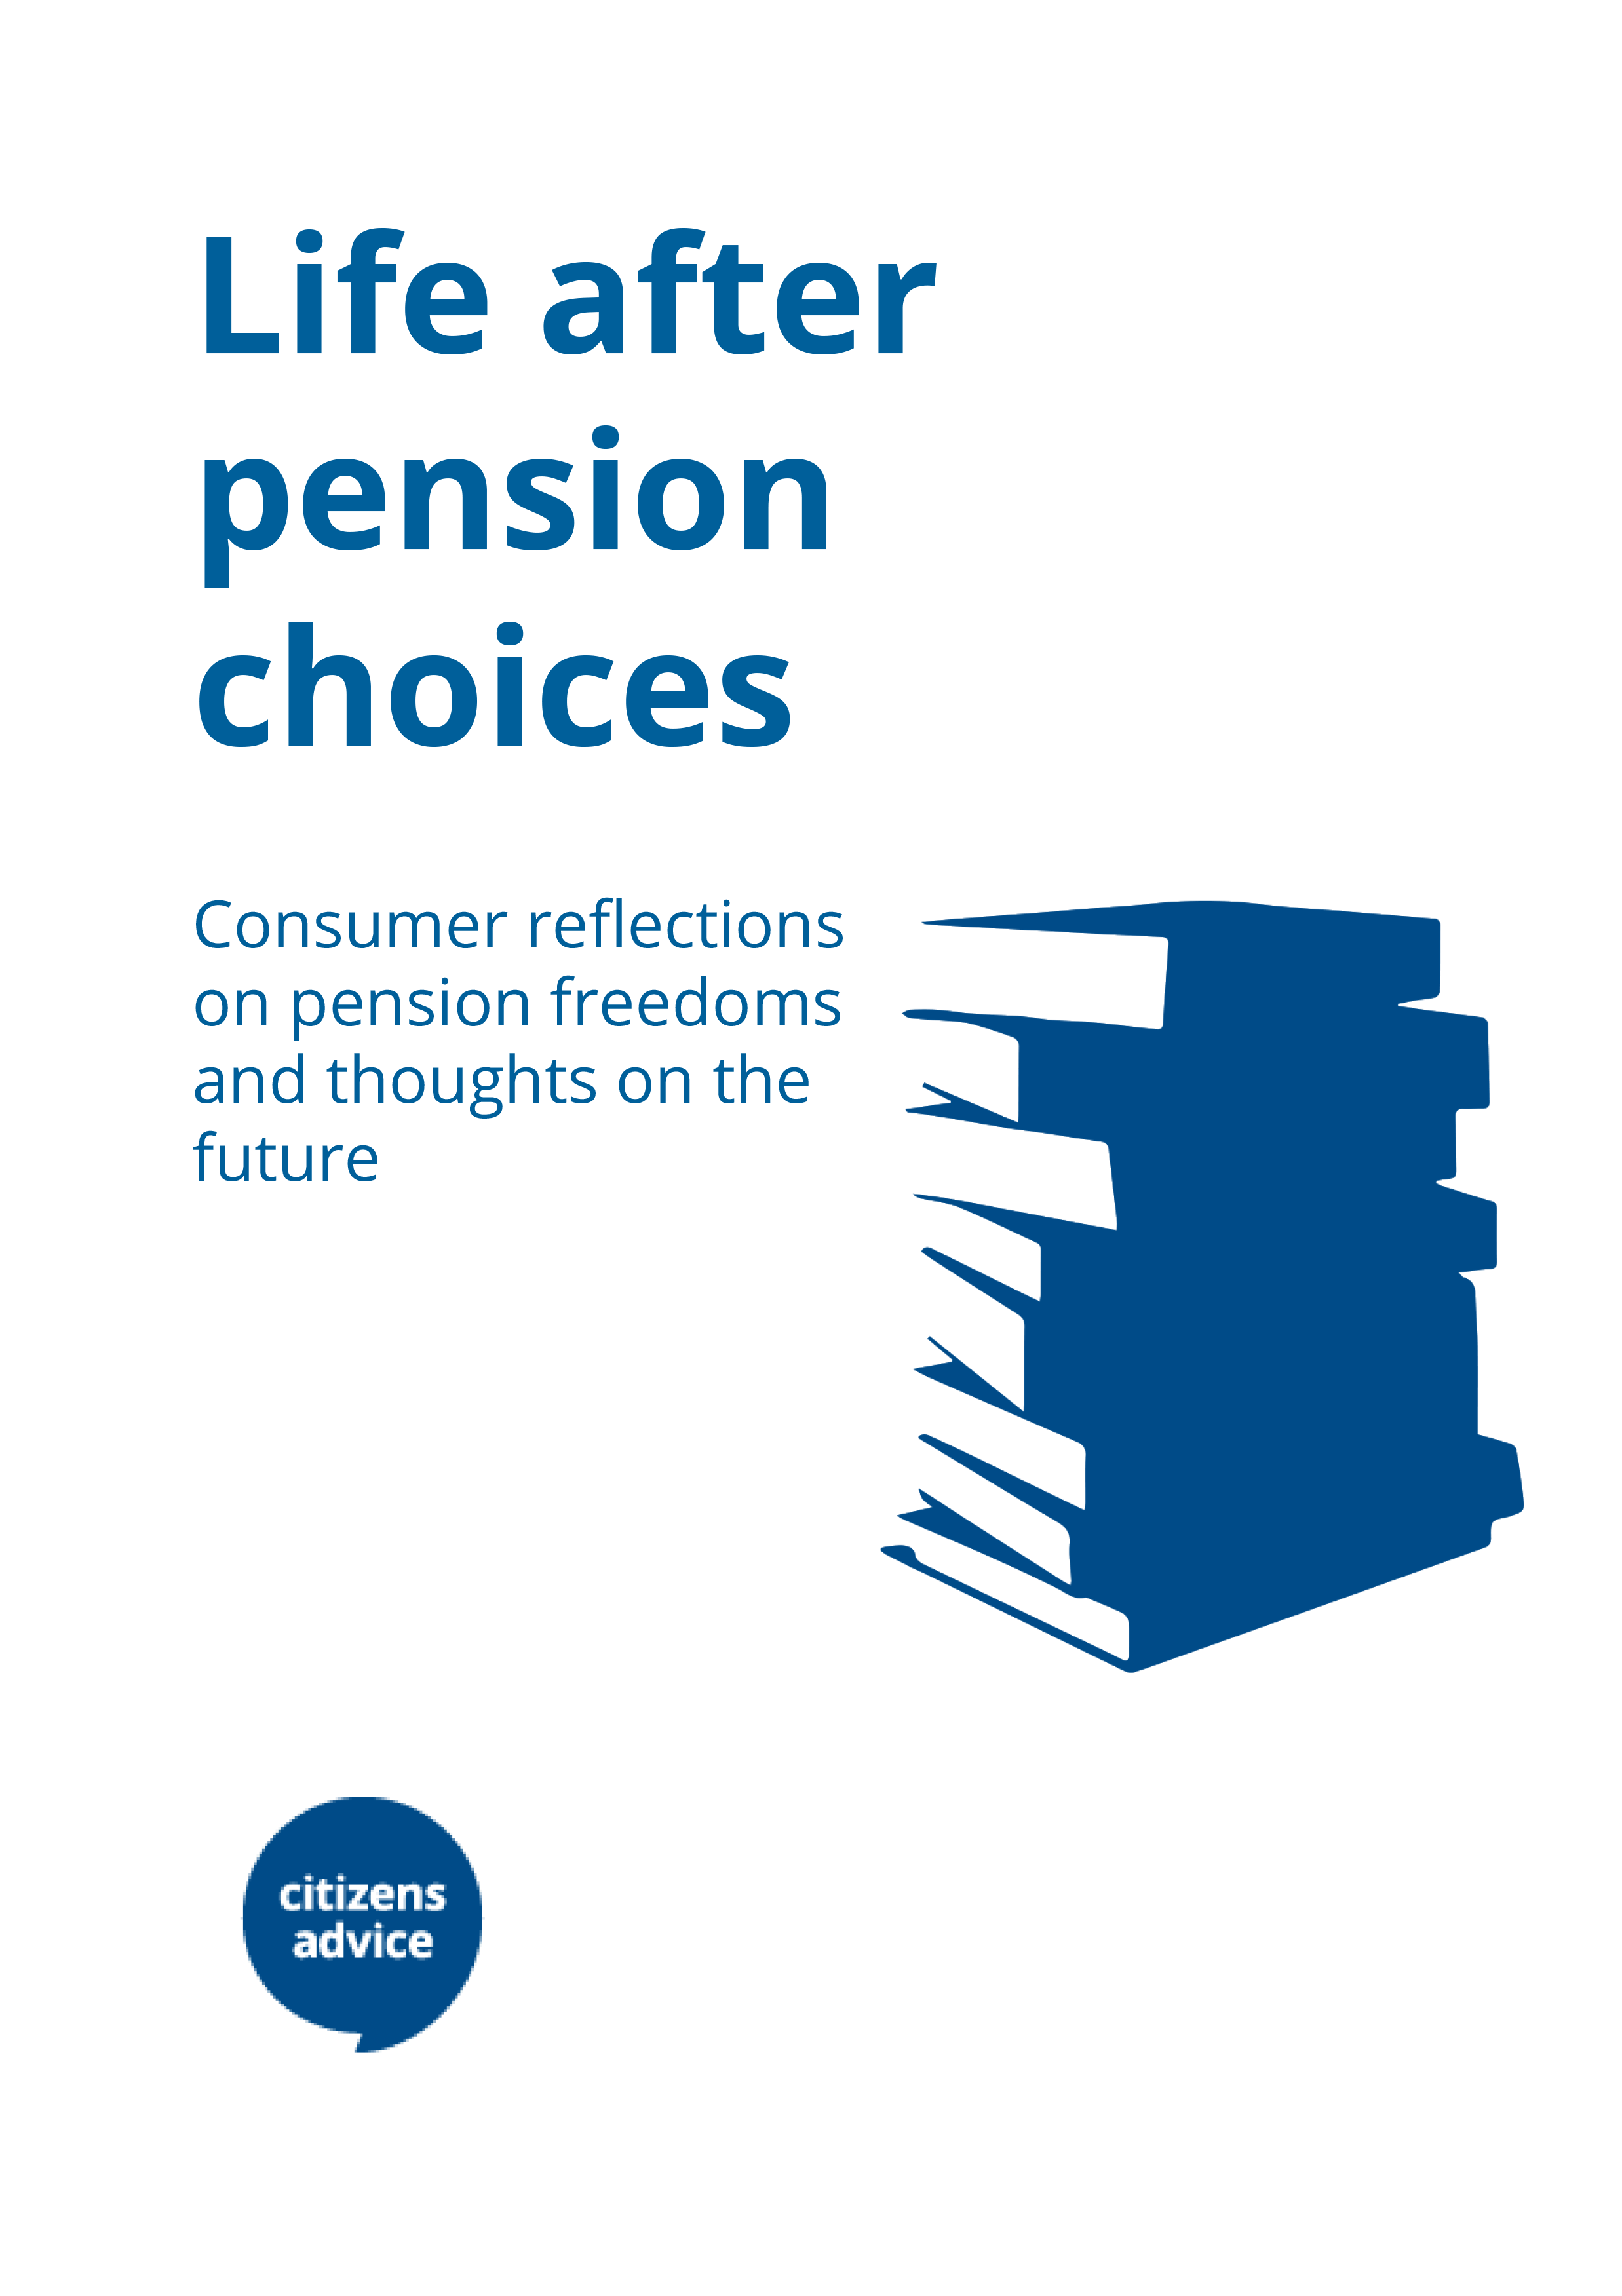 Life after pension choices